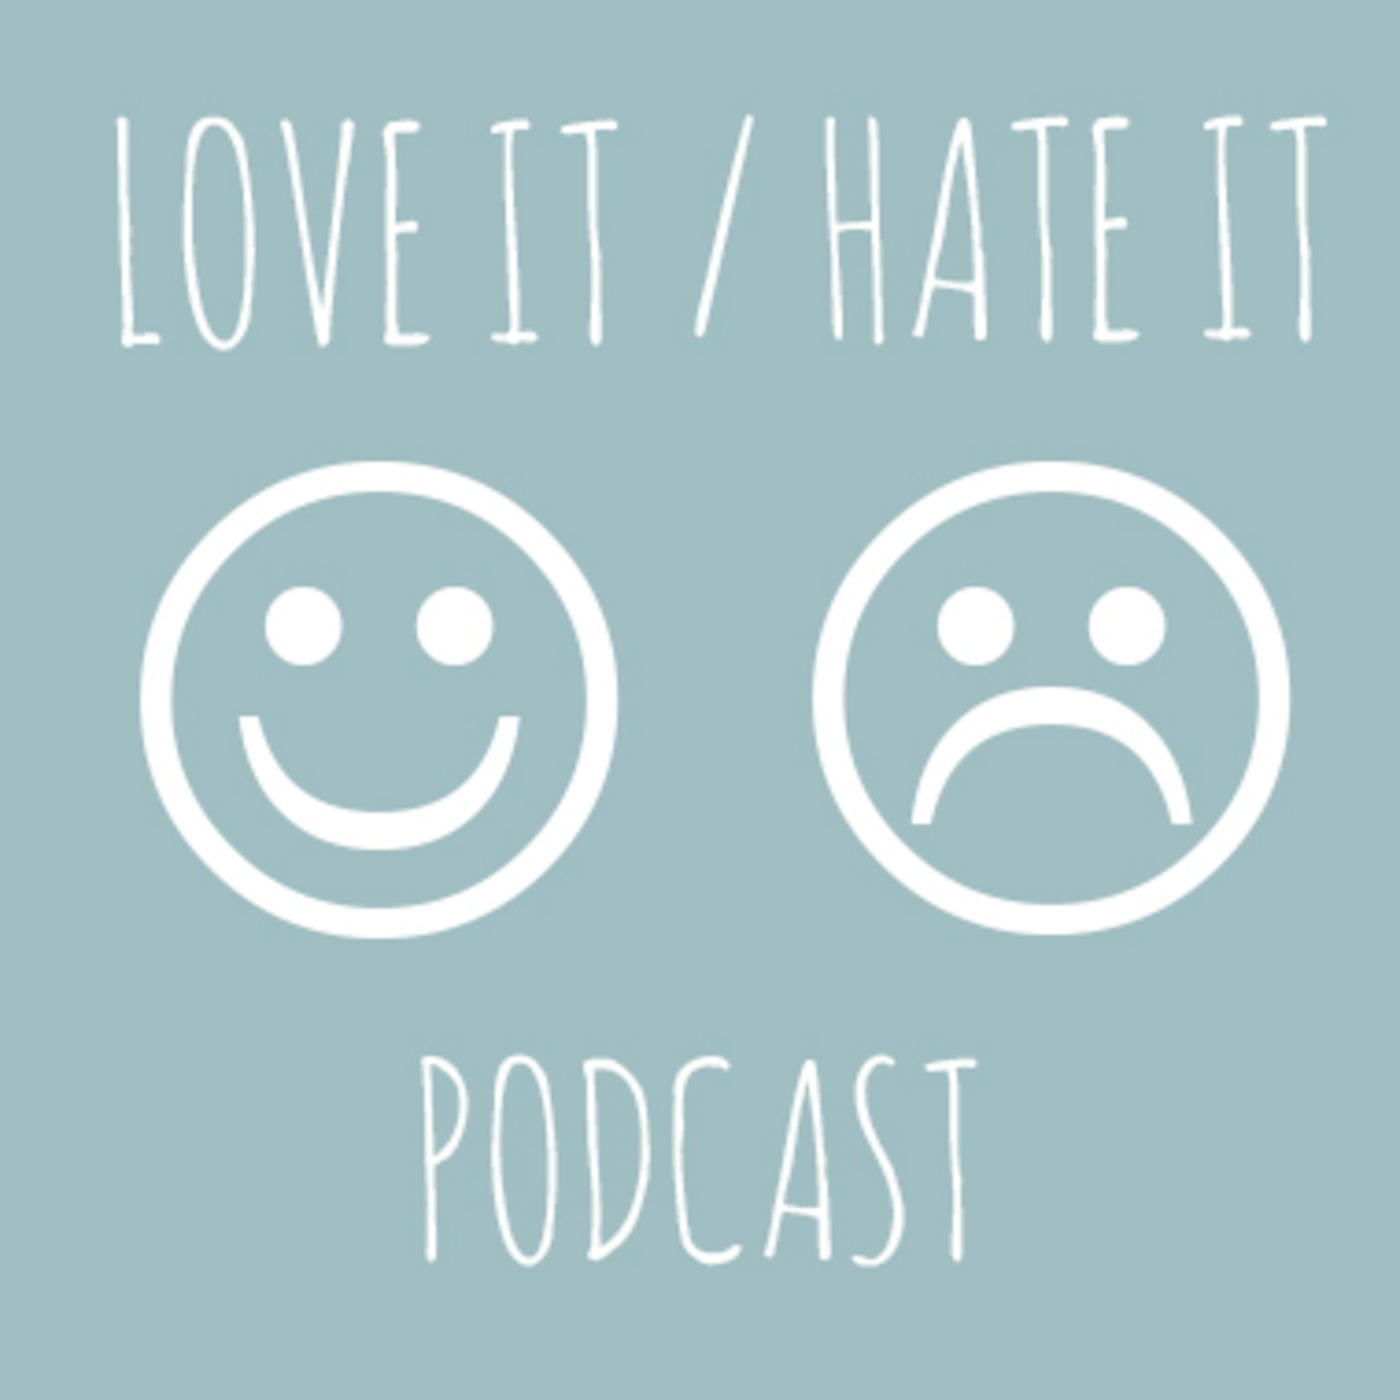 Love It/Hate It Podcast